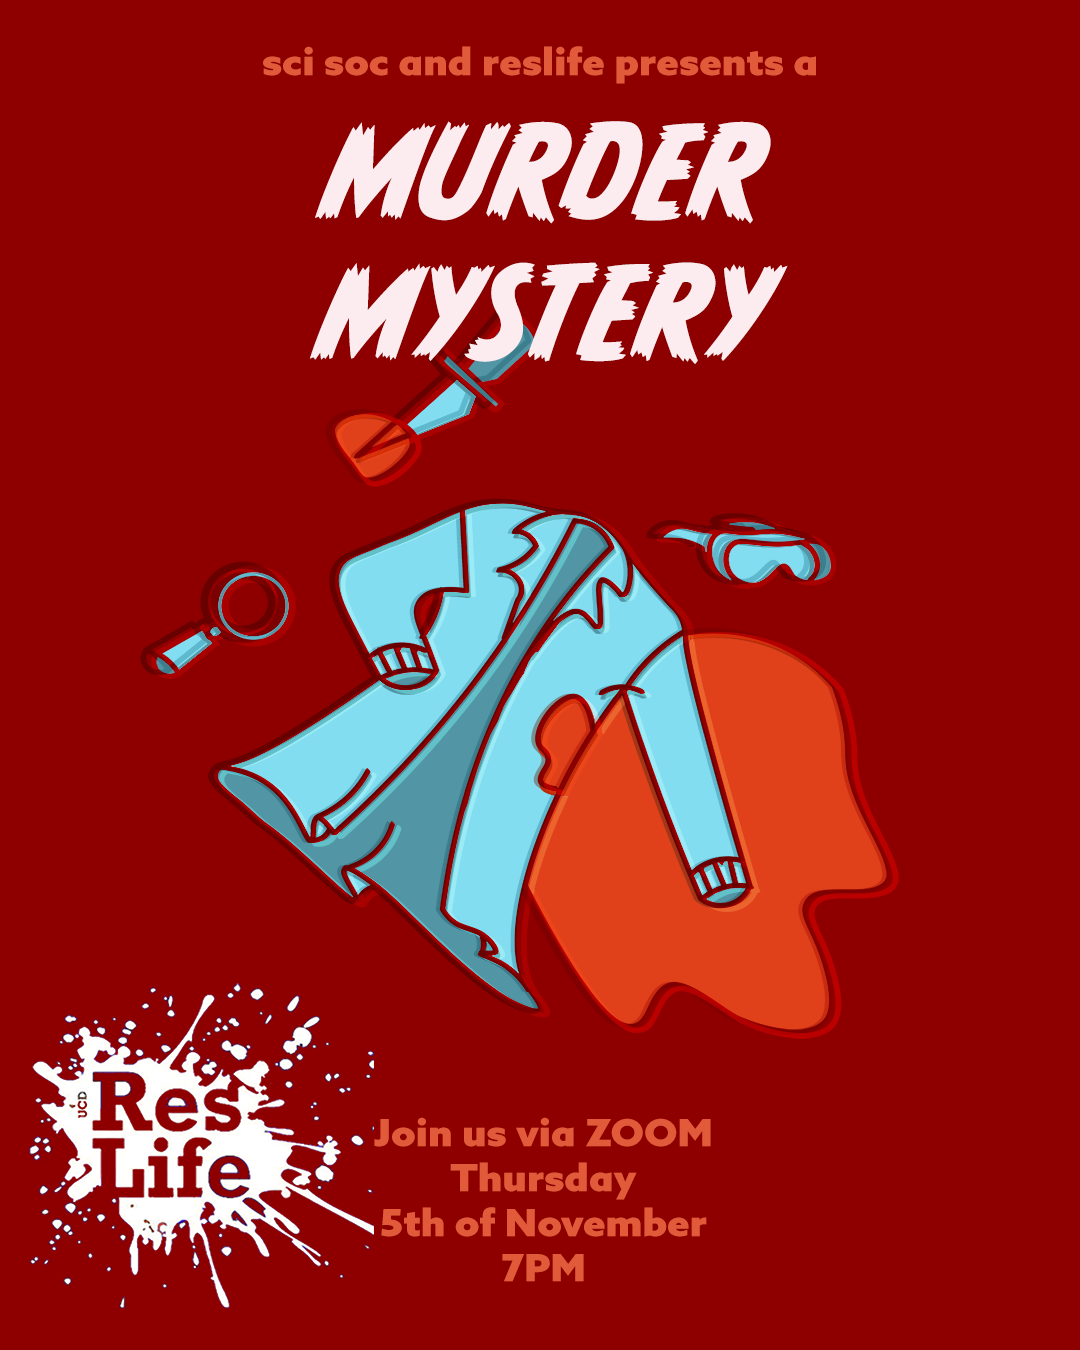 Poster for UCD SciSoc and UCD ResLife murder mystery on Thursday 5th November 2020 at 5pm.